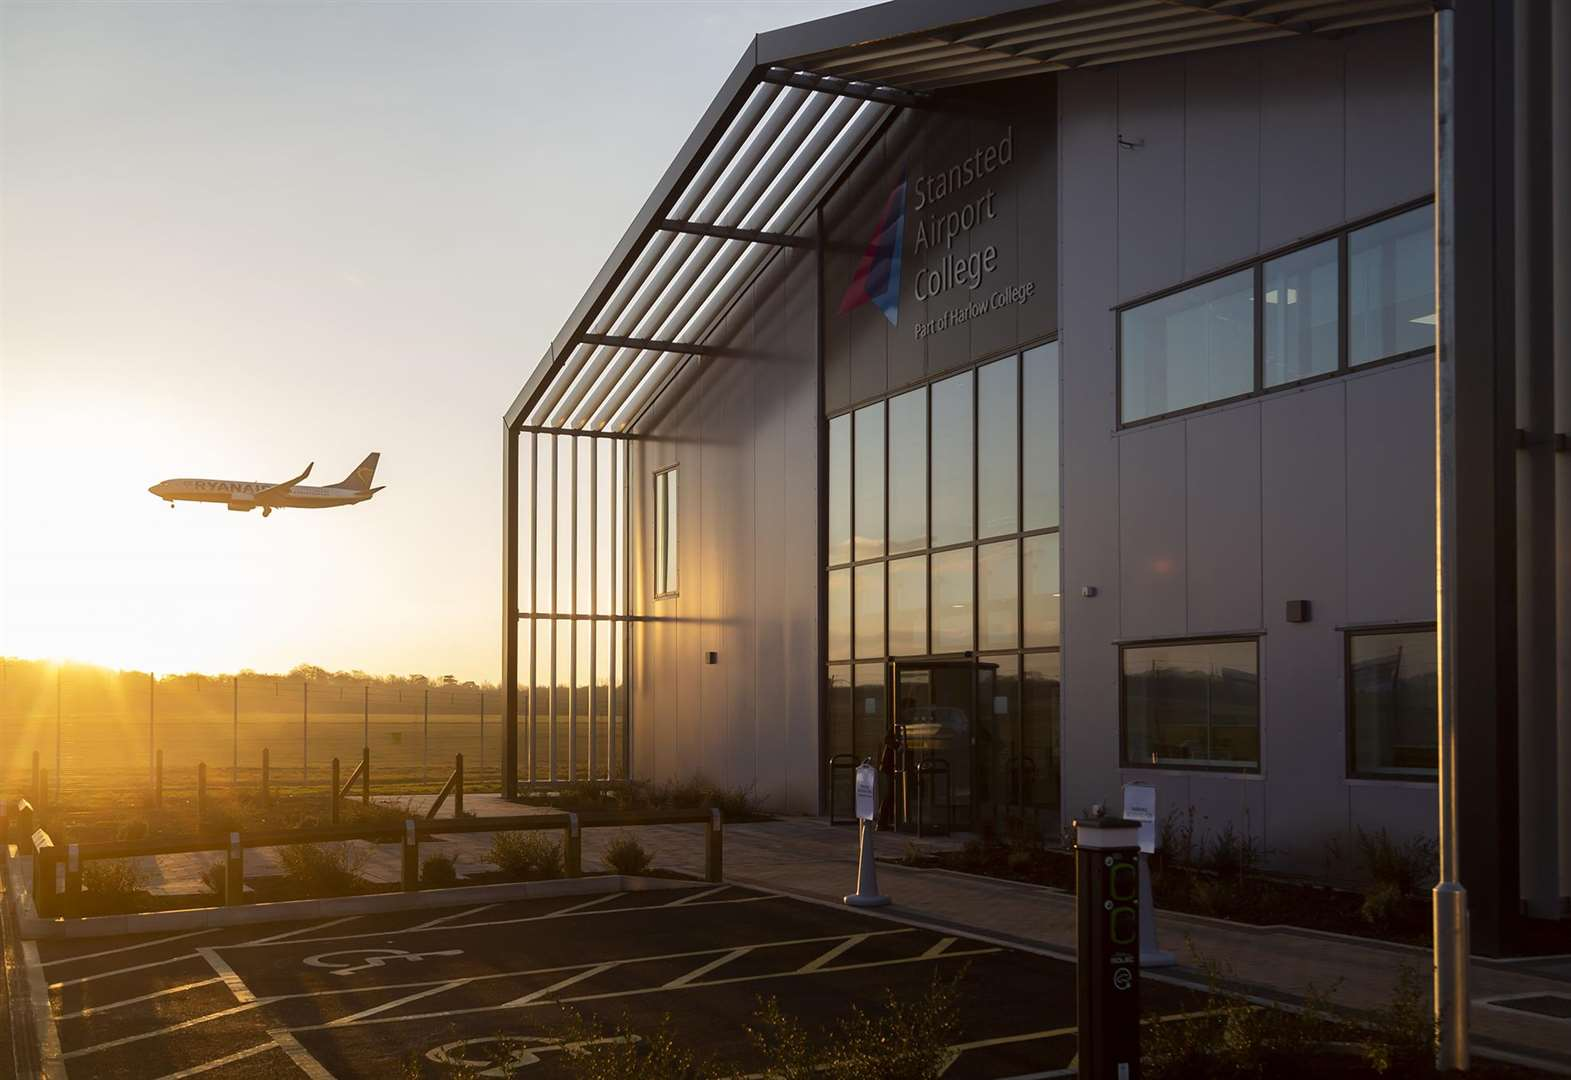 Stansted Airport College takes off